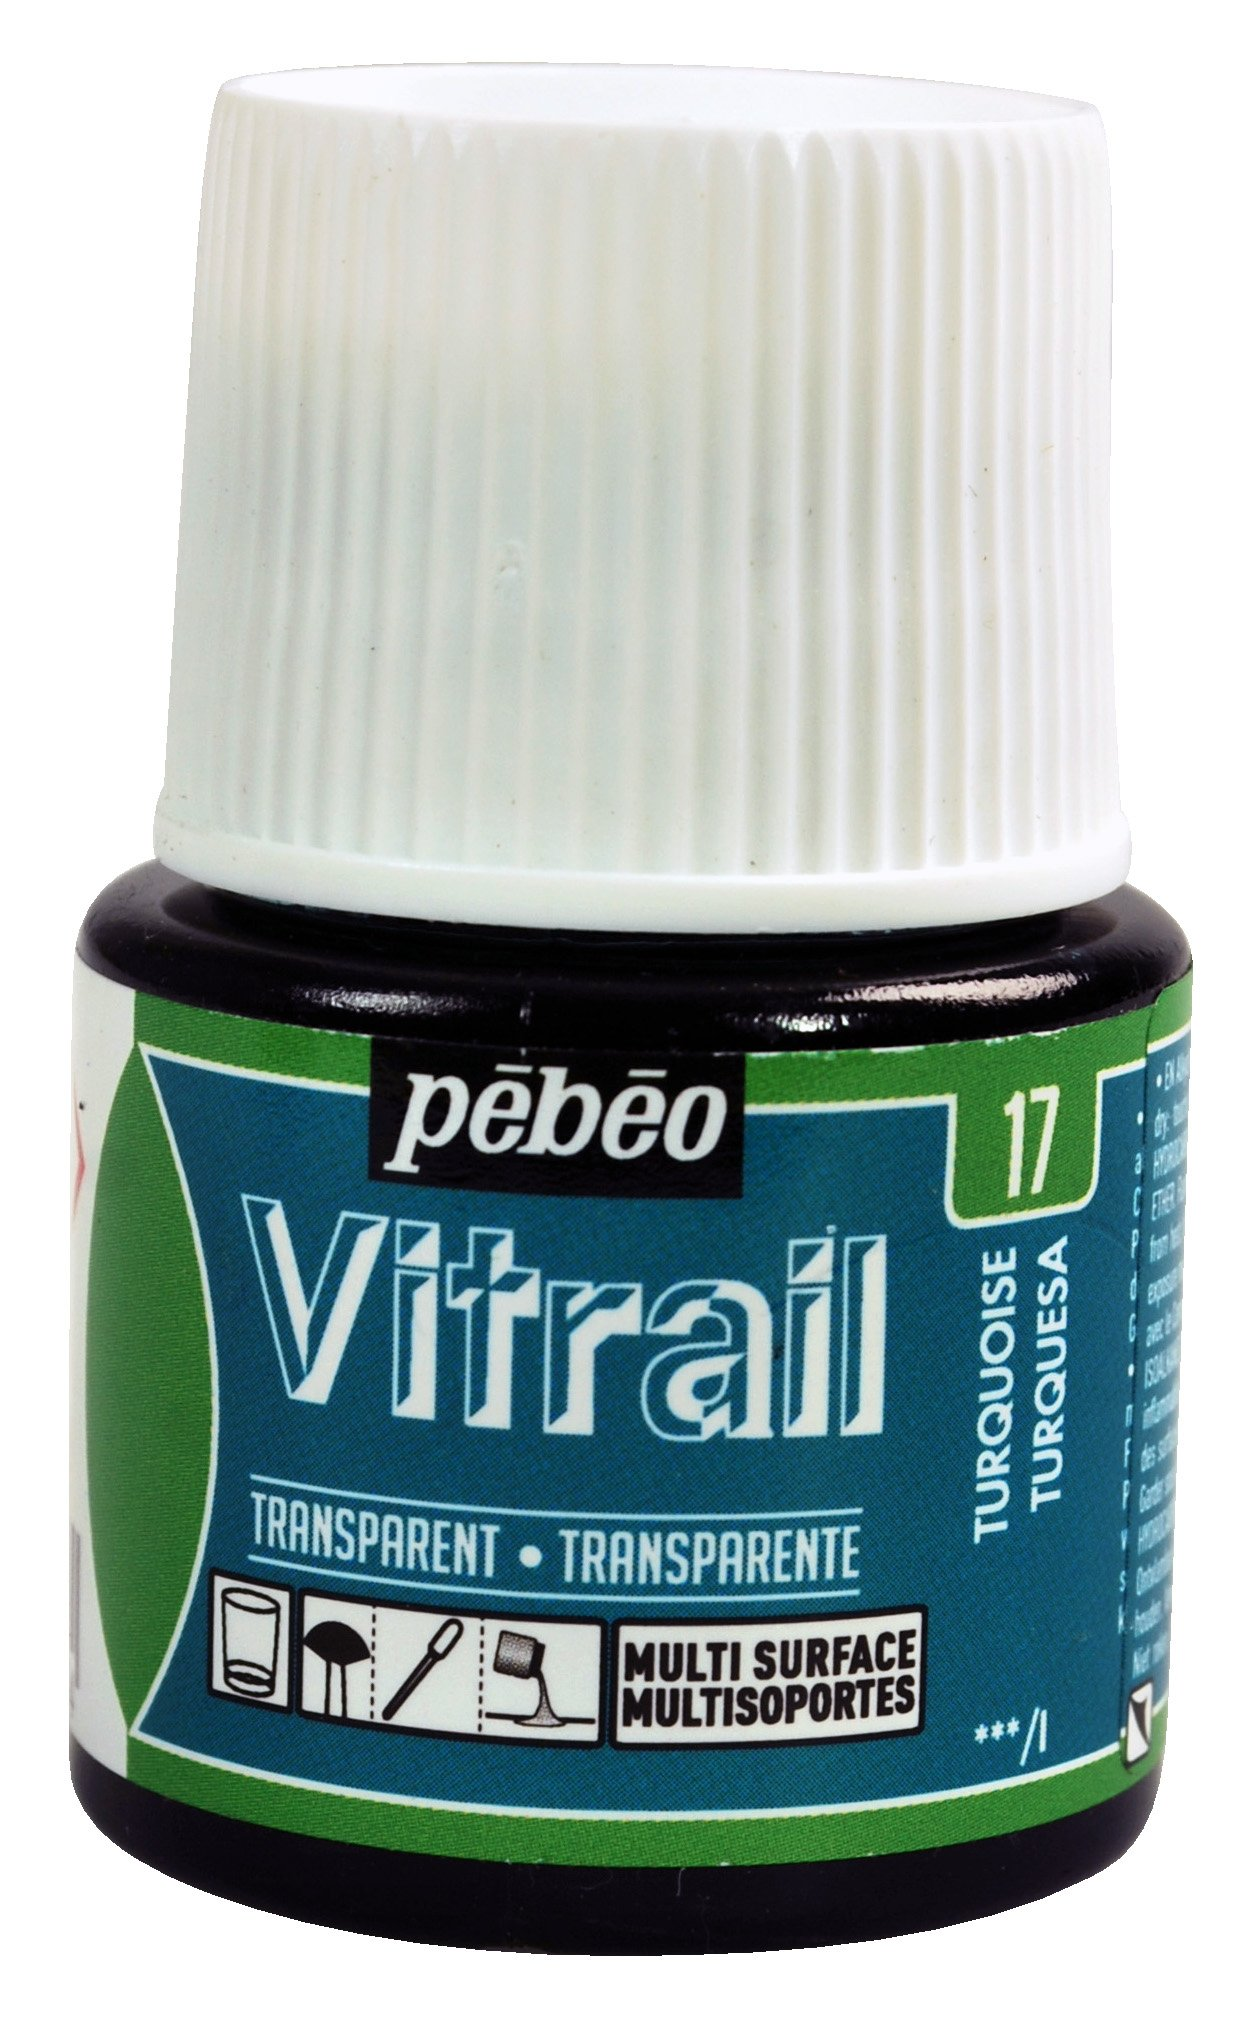 Pebeo Vitrail, Stained Glass Effect Paint, 45 ml Bottle - Turquoise